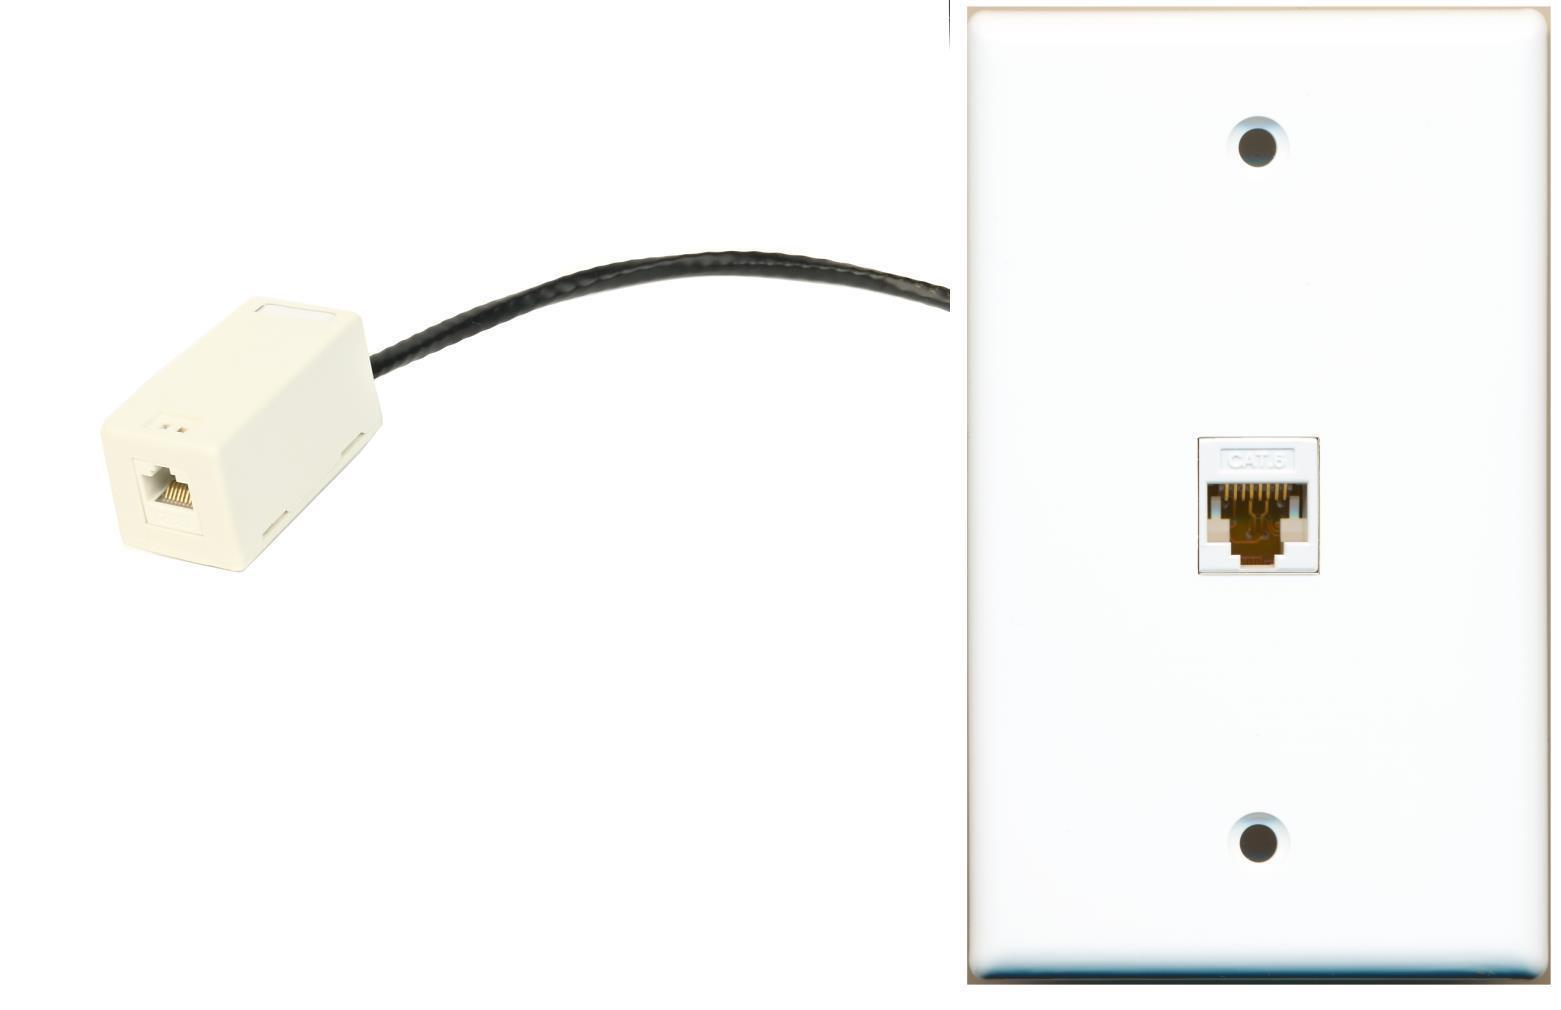 Primary image for RiteAV Cat6 Rj45 Ethernet Wall Plate Flat White with Extension Dongle (Pigtail)